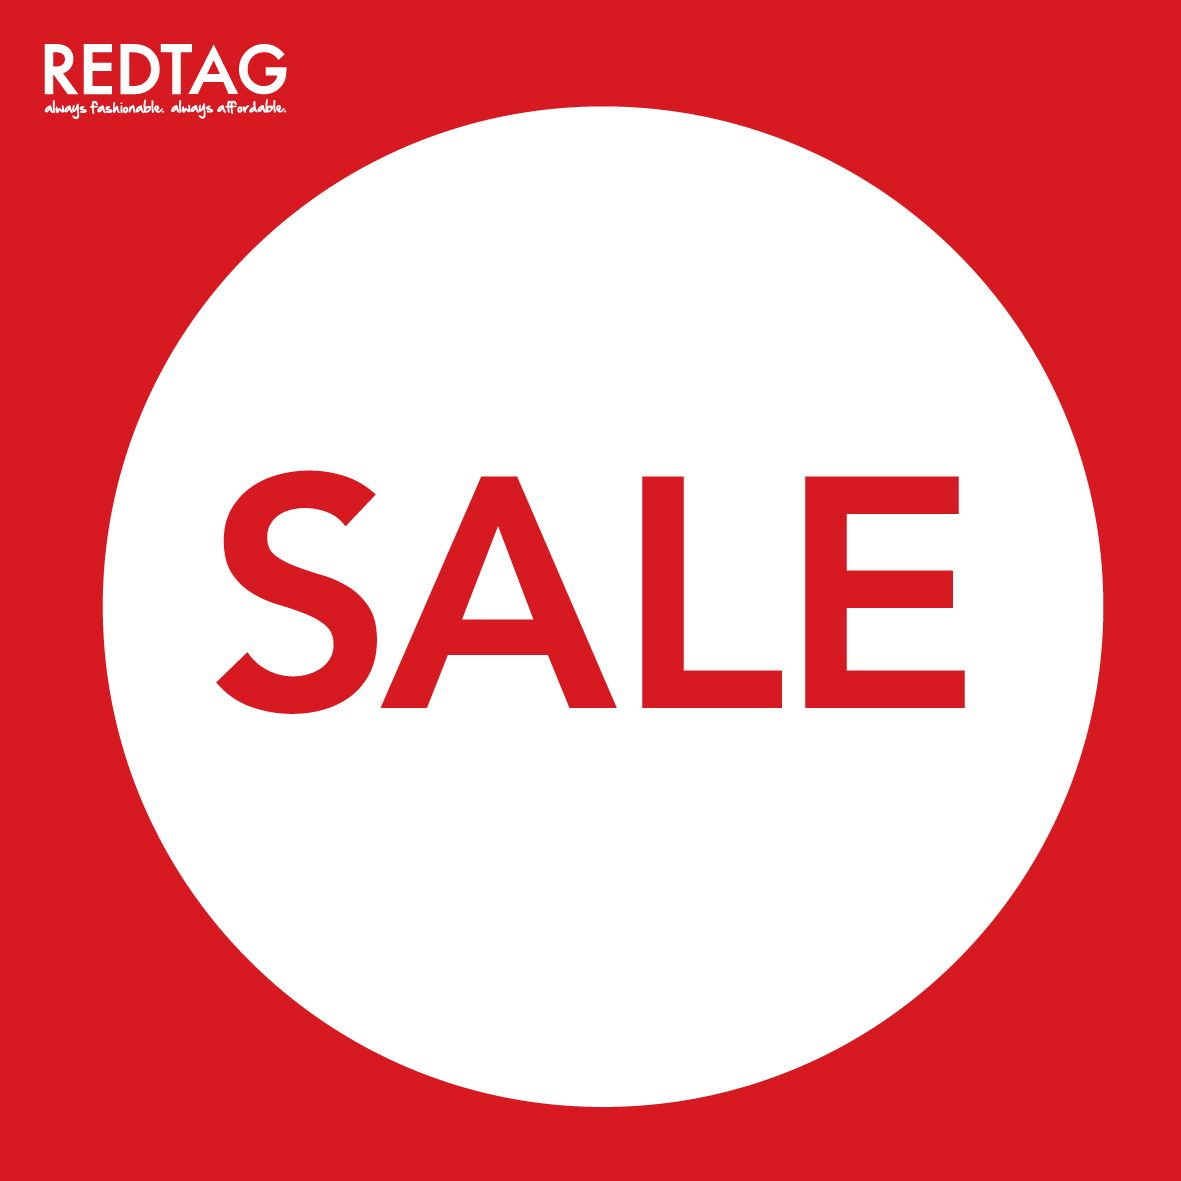 The Offers Are On Race To Your Nearest Redtag Store To Check Out Our Coolest Trends Discounted Just For You ابتدأت العروض سارع Spring Sign Logos Atari Logo